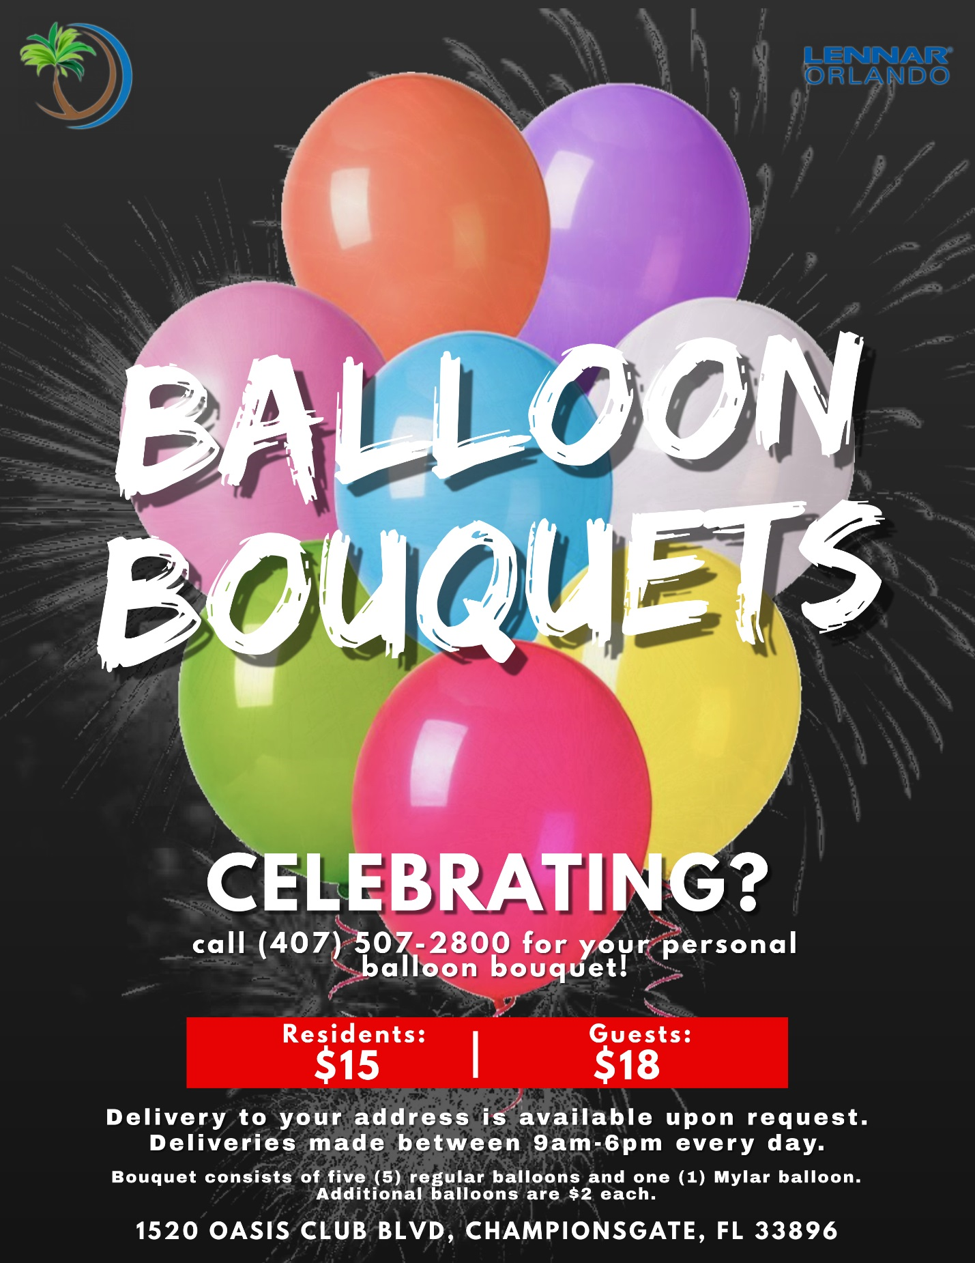 Balloon Bouquets Celebrating? Call 407-507-2800 for your personal balloon bouquet!  Residents: $15, Guests: $18 Delivery to your address is available upon request. Deliveries made between 9am-6pm Every day. Bouquet consists of 5 regular balloons and 1 Mylar Balloon. Additional balloons are $2 each. 1520 Oasis Club Blvd, Championsgate FL, 33896, 407-507-2800